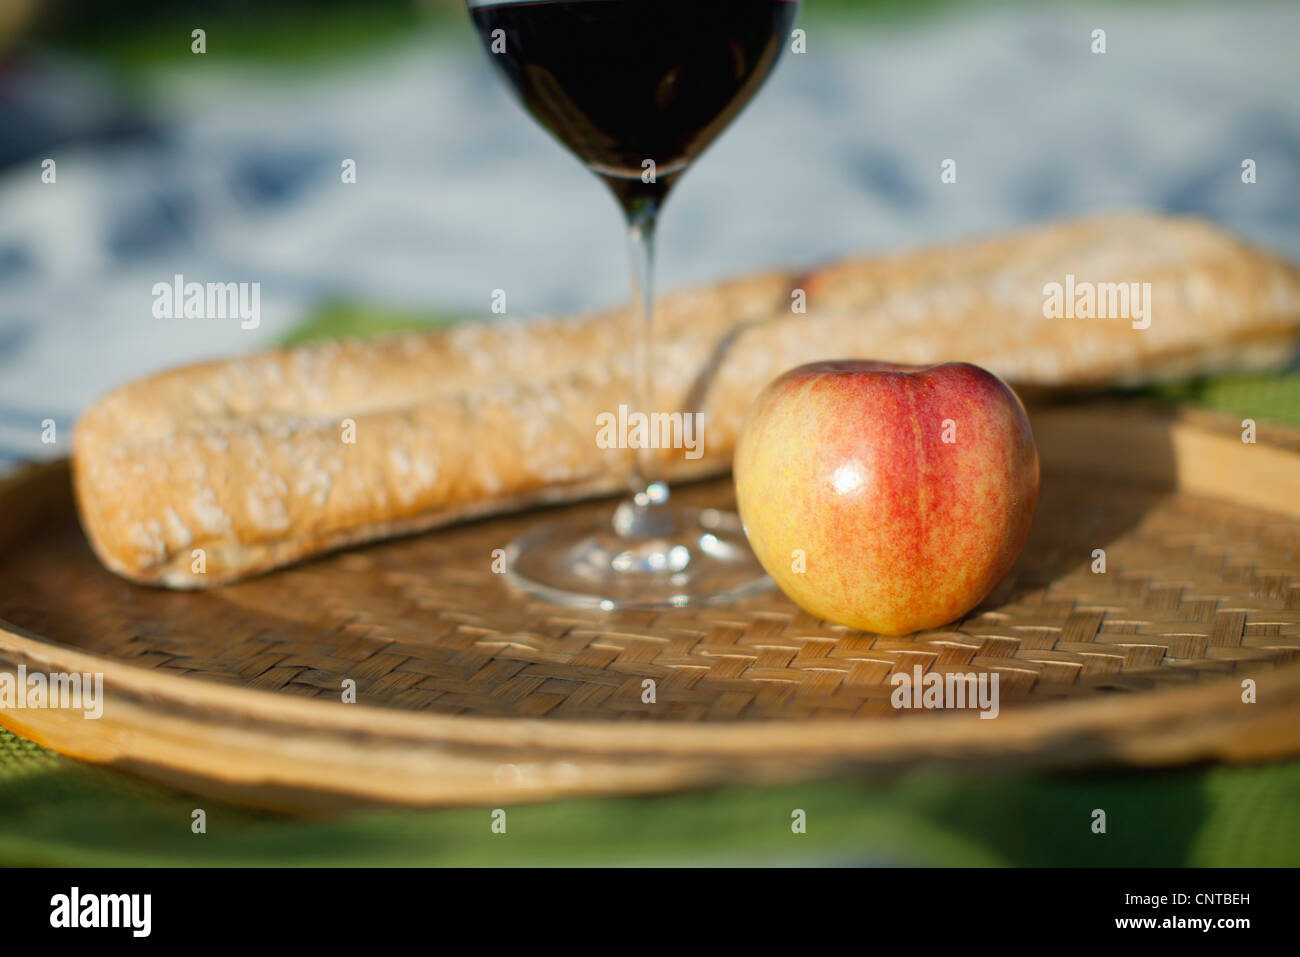 Apple, glass of wine and bread - Stock Image